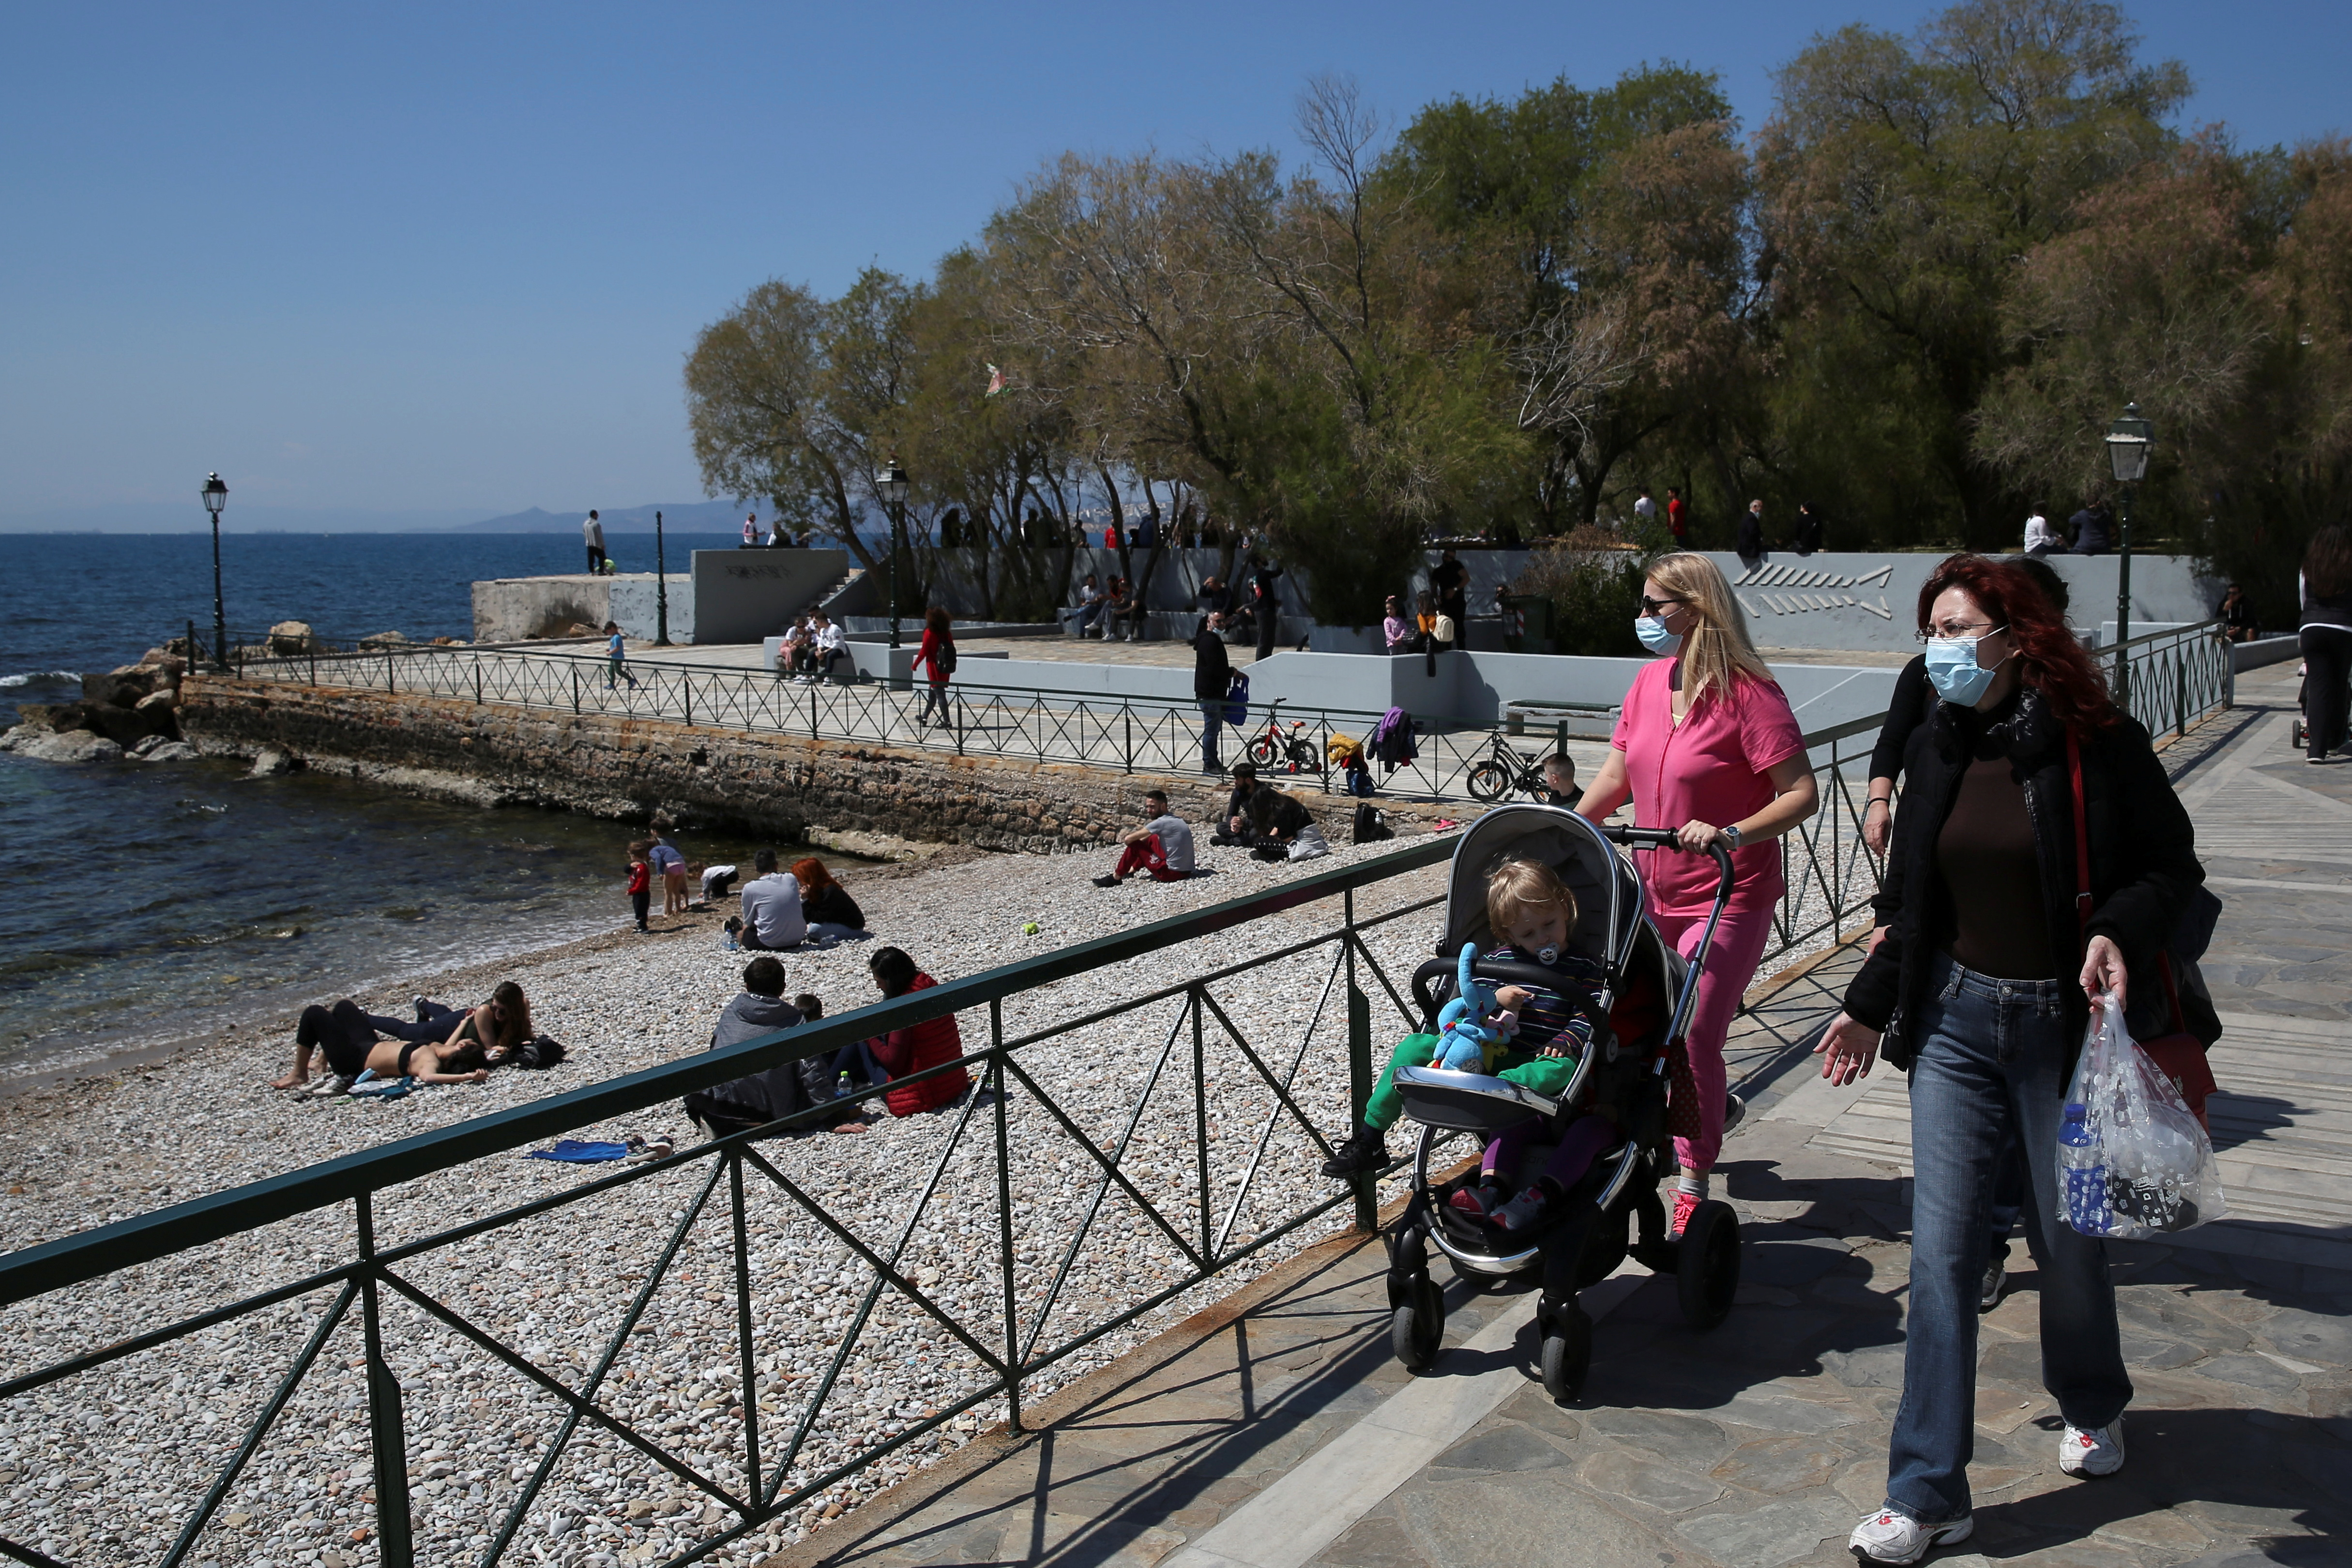 People walk near the beach following the easing of measures against the spread of the coronavirus disease (COVID-19) in Faliro suburb, near Athens, Greece, April 3, 2021. REUTERS/Costas Baltas